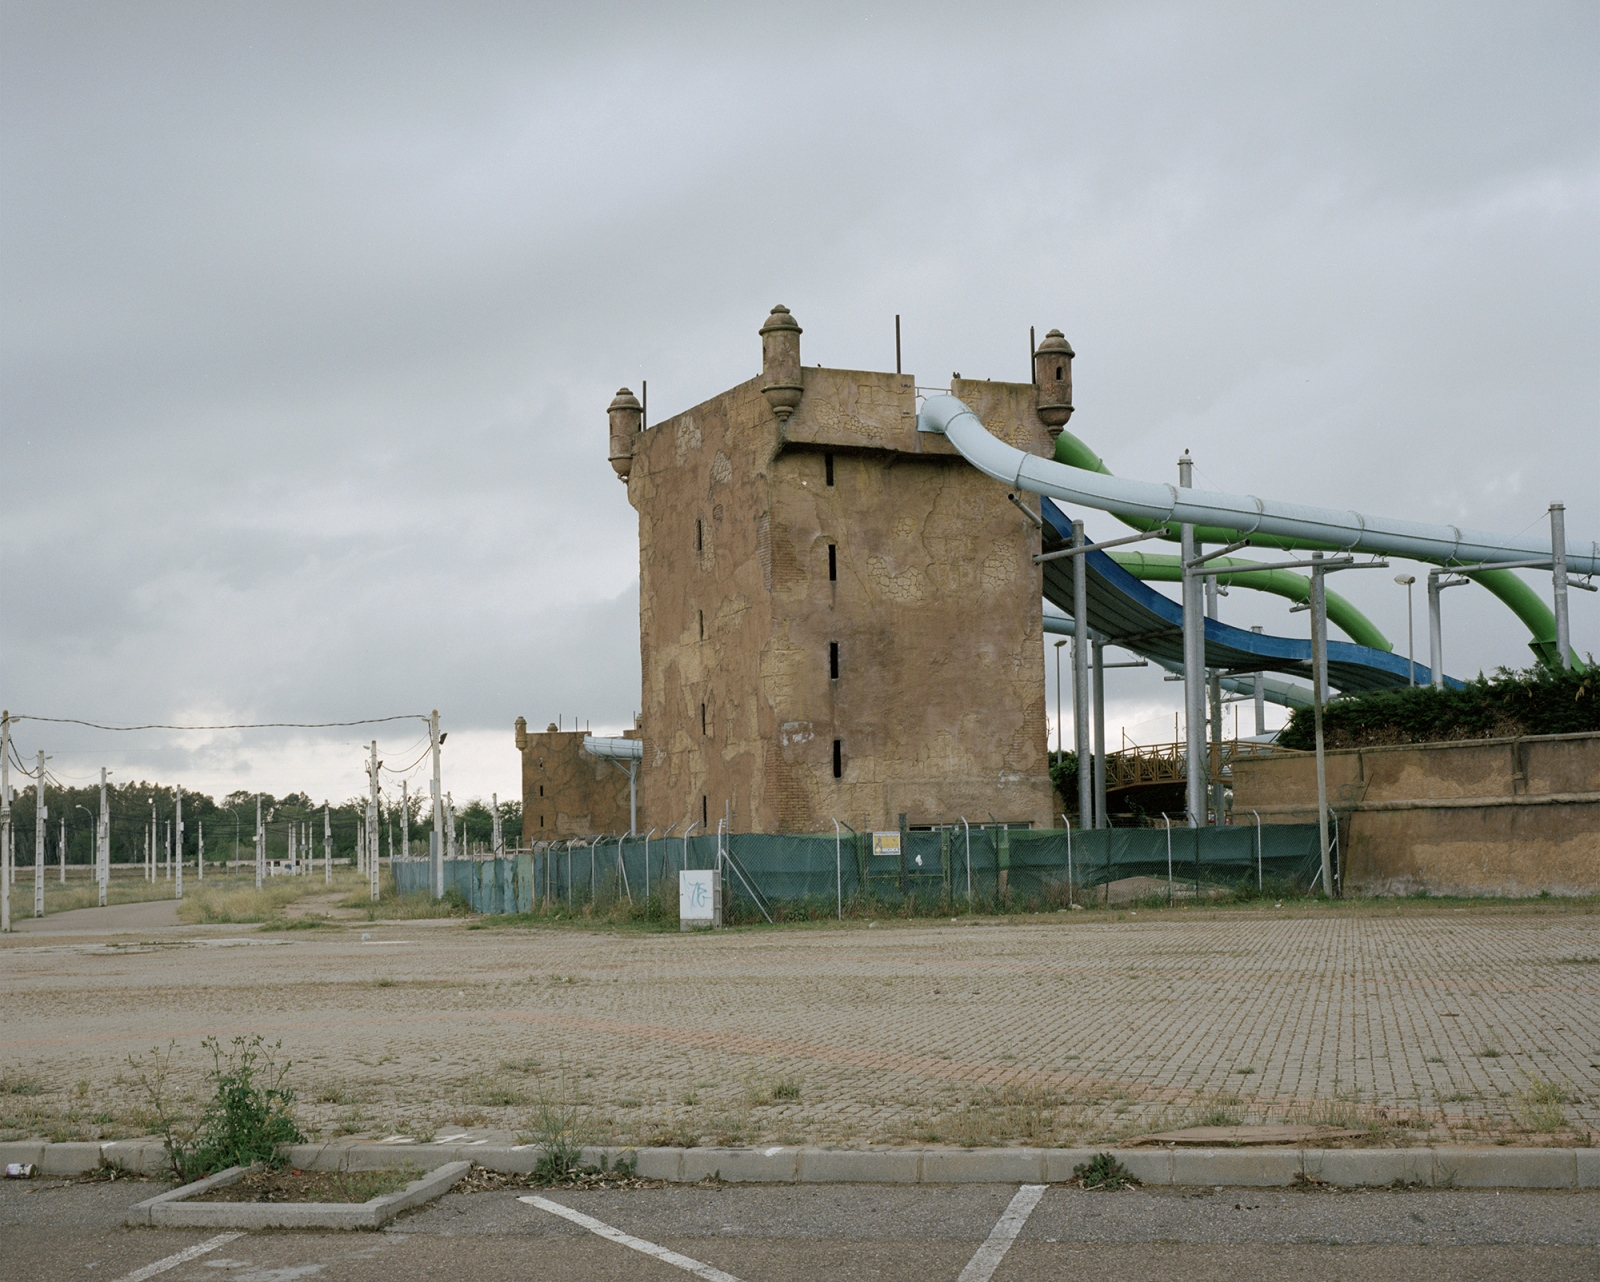 Spain, Badajoz. A water park built with the shape of a middle age castle.